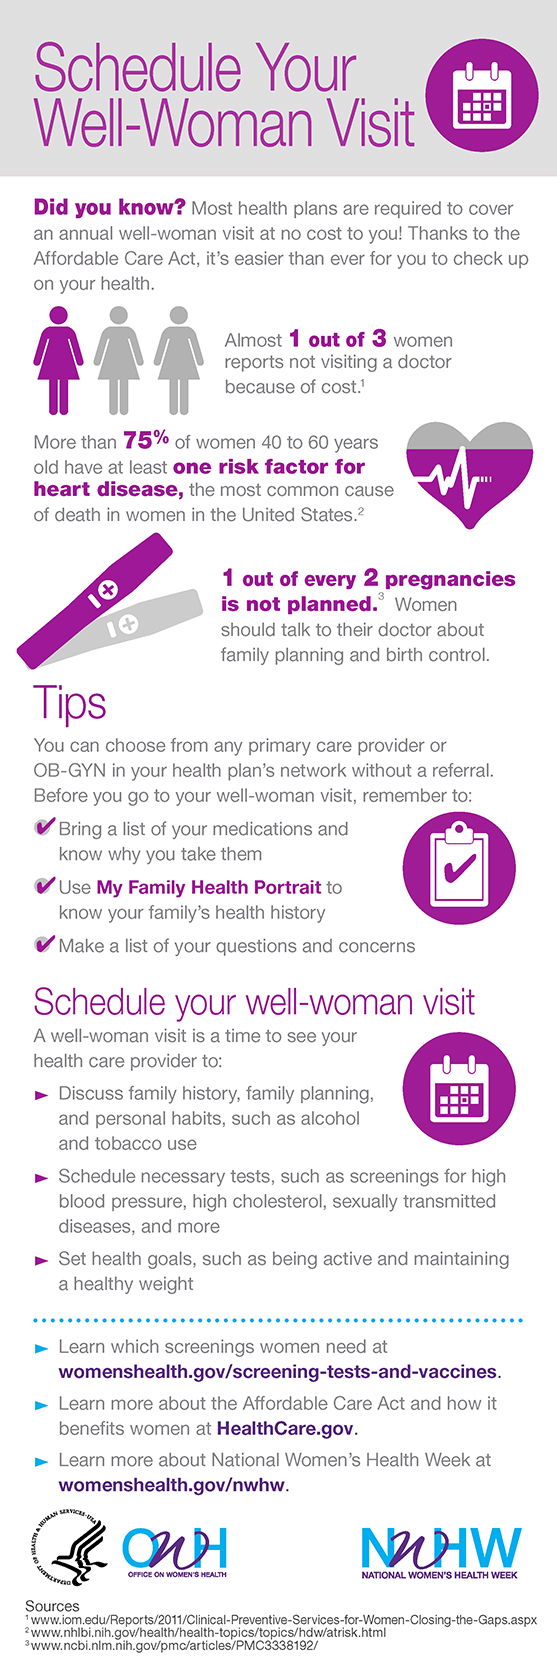 nwhw-infographic-well-woman